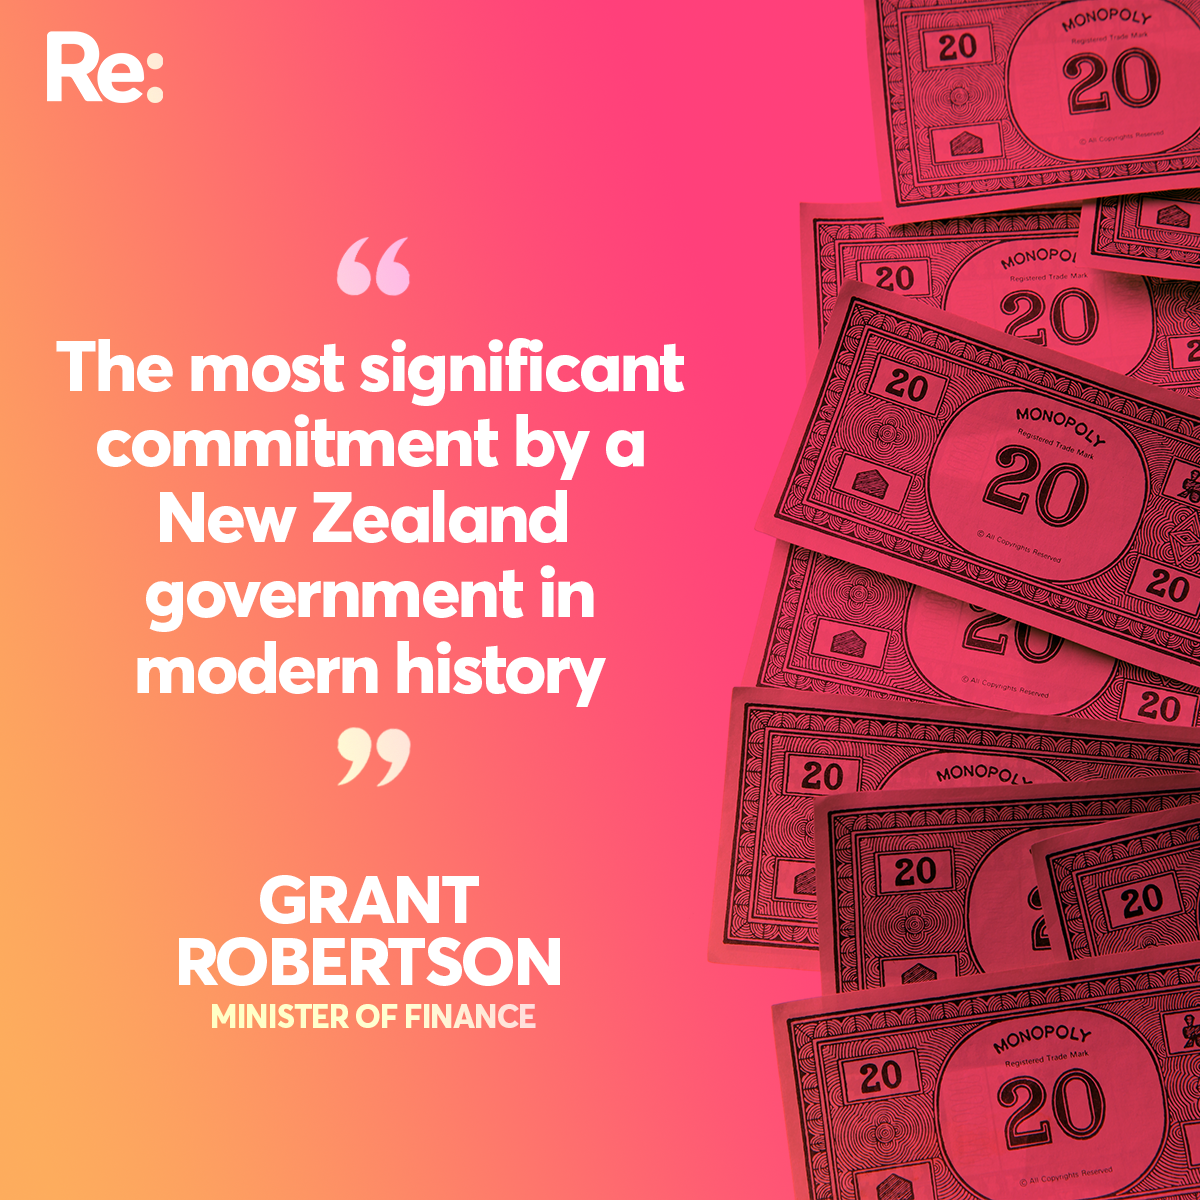 1 2020 BUDGET 02 QUOTE ROBERTSON